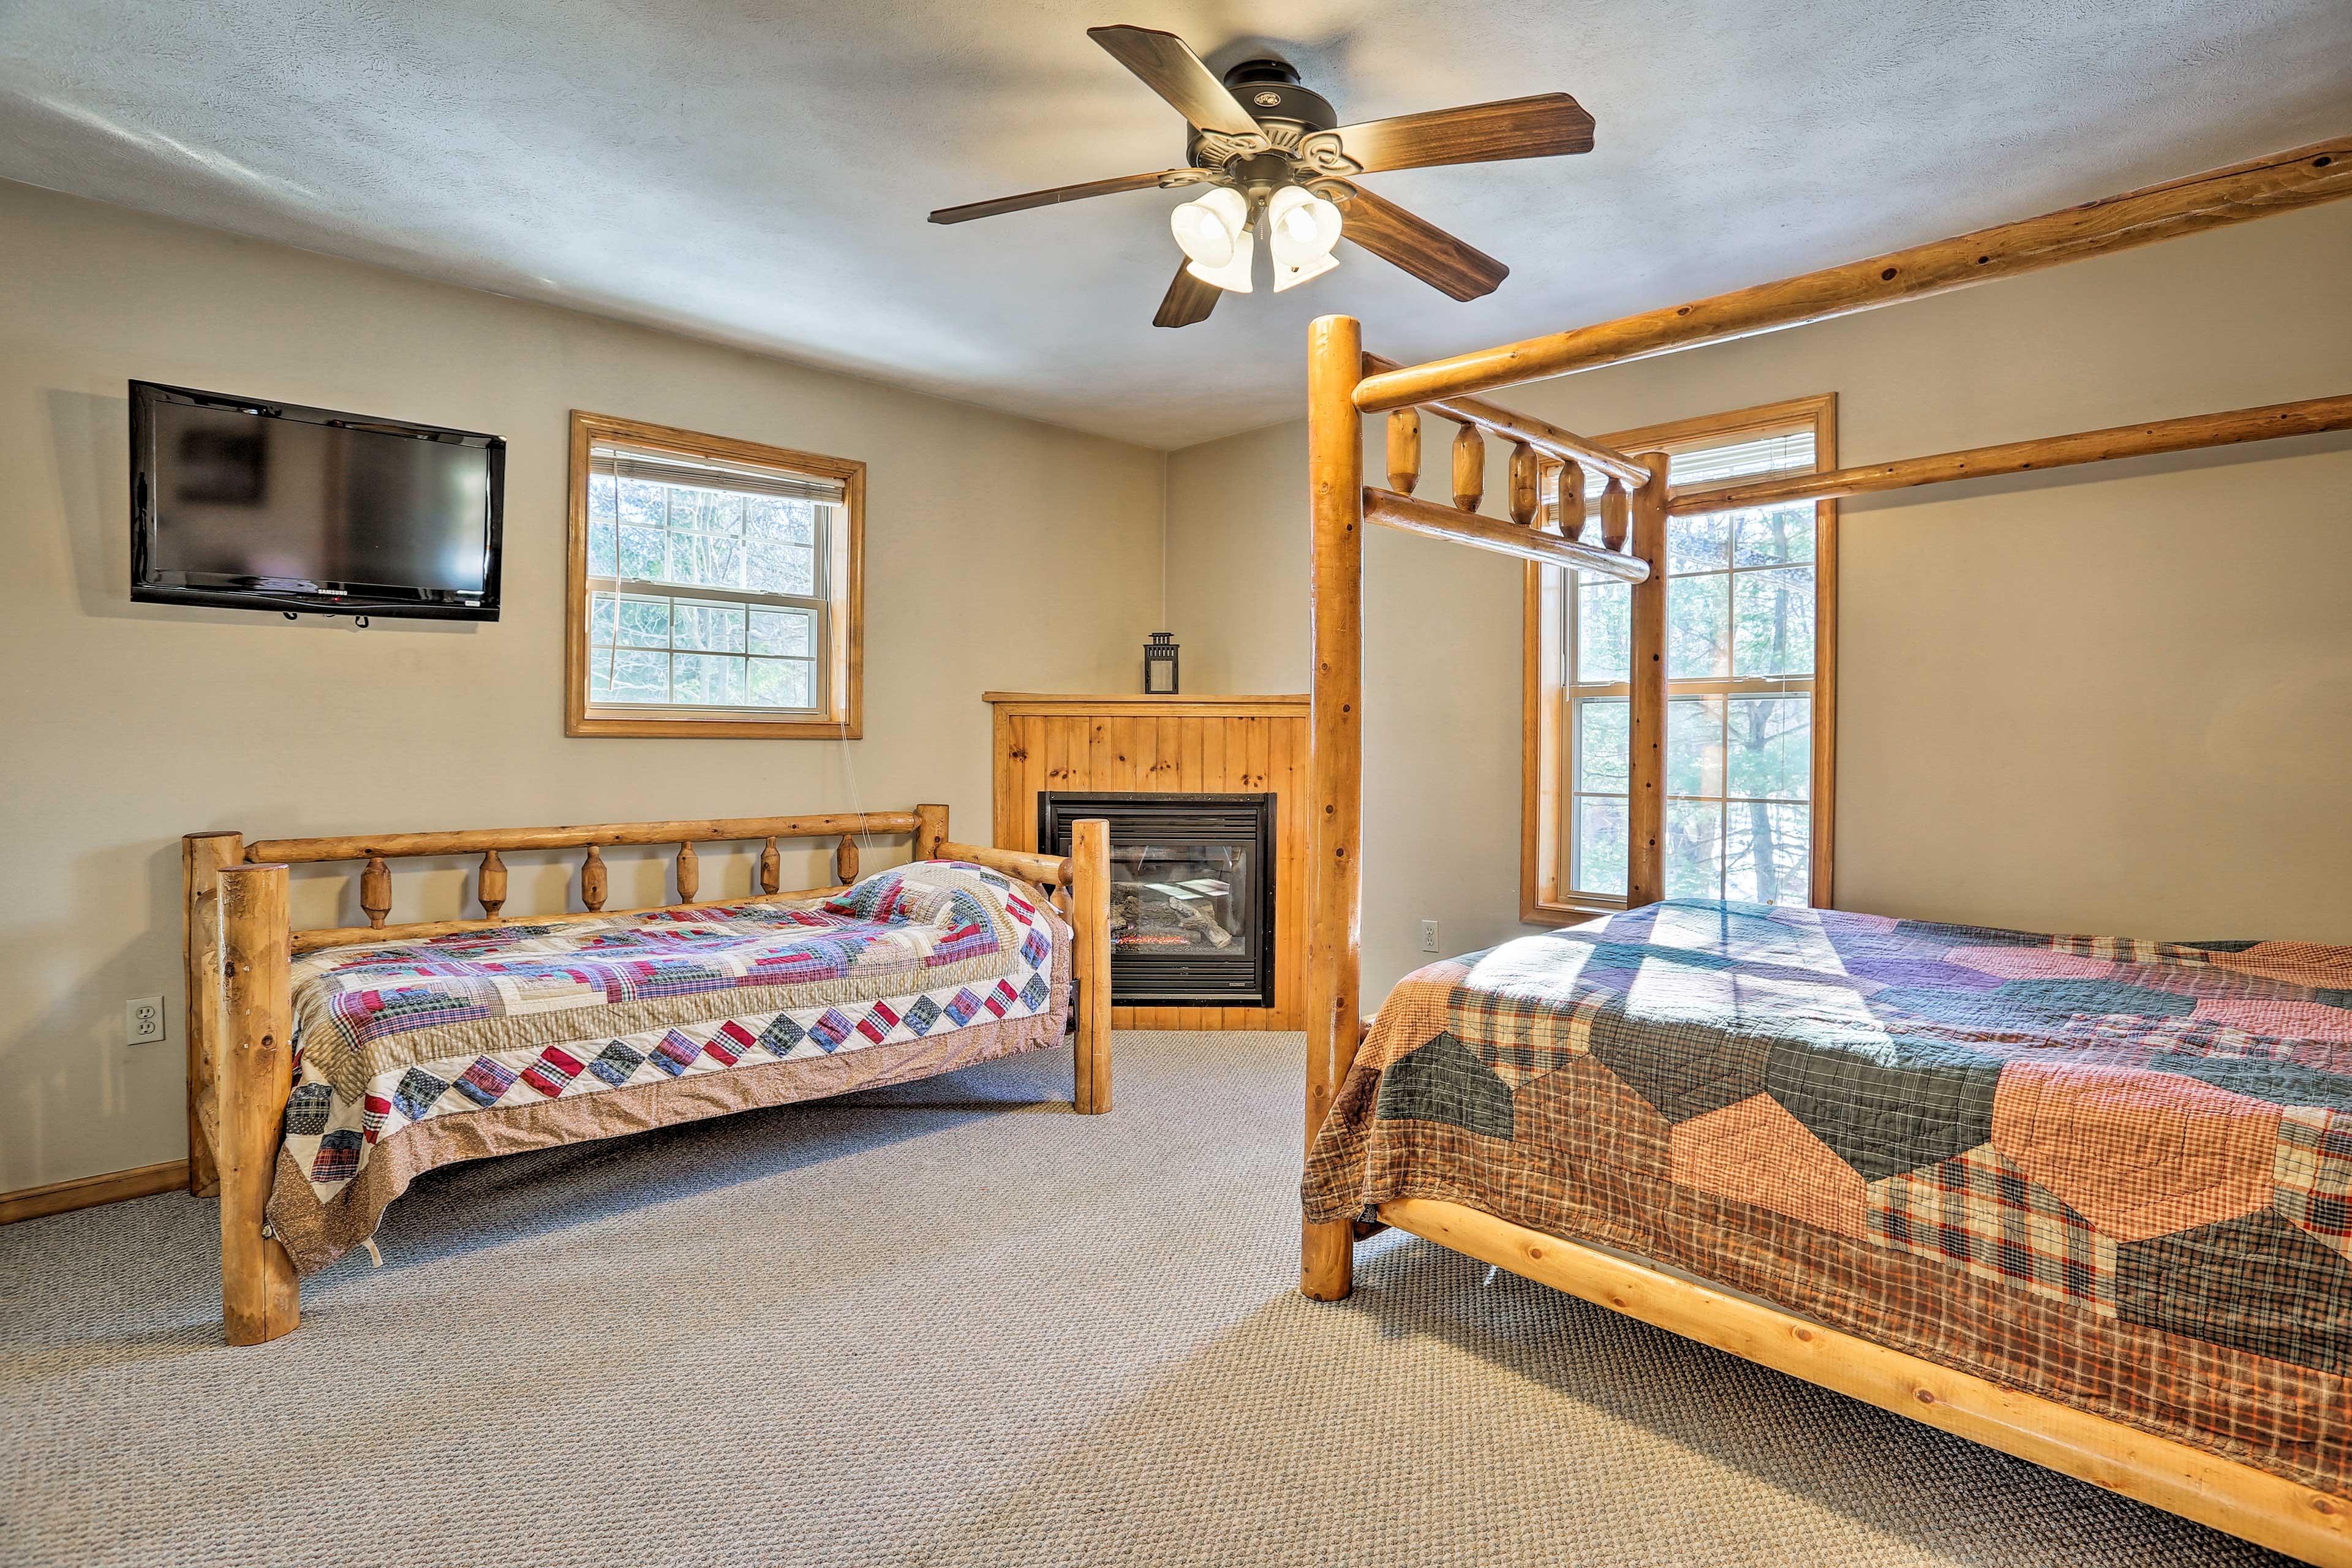 The master bedroom features a queen and twin bed.